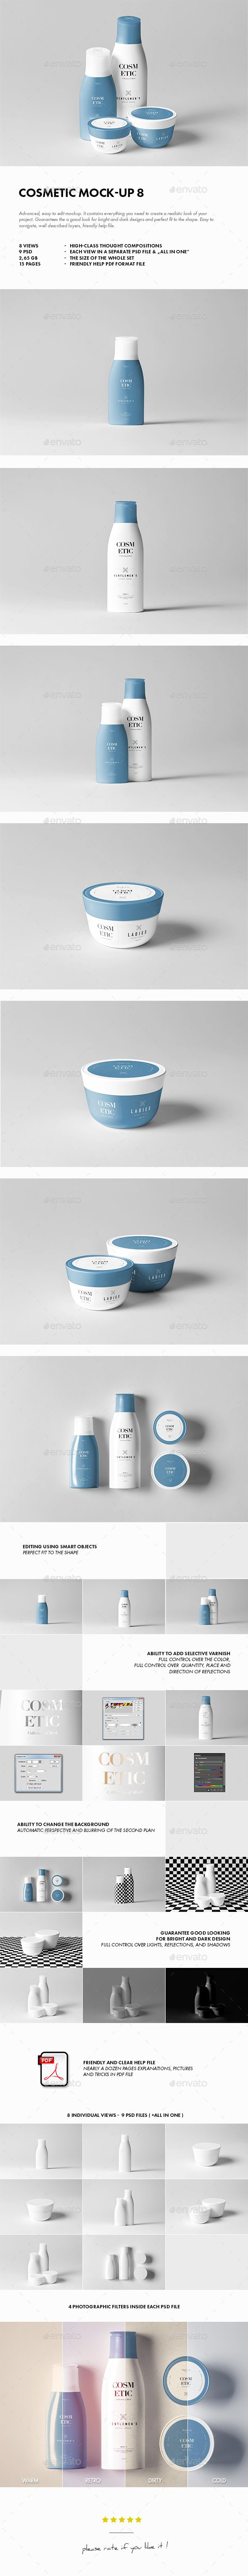 Cosmetic Mock-up. Download here: https://graphicriver.net/item/cosmetic-mockup-8/17529897?ref=ksioks